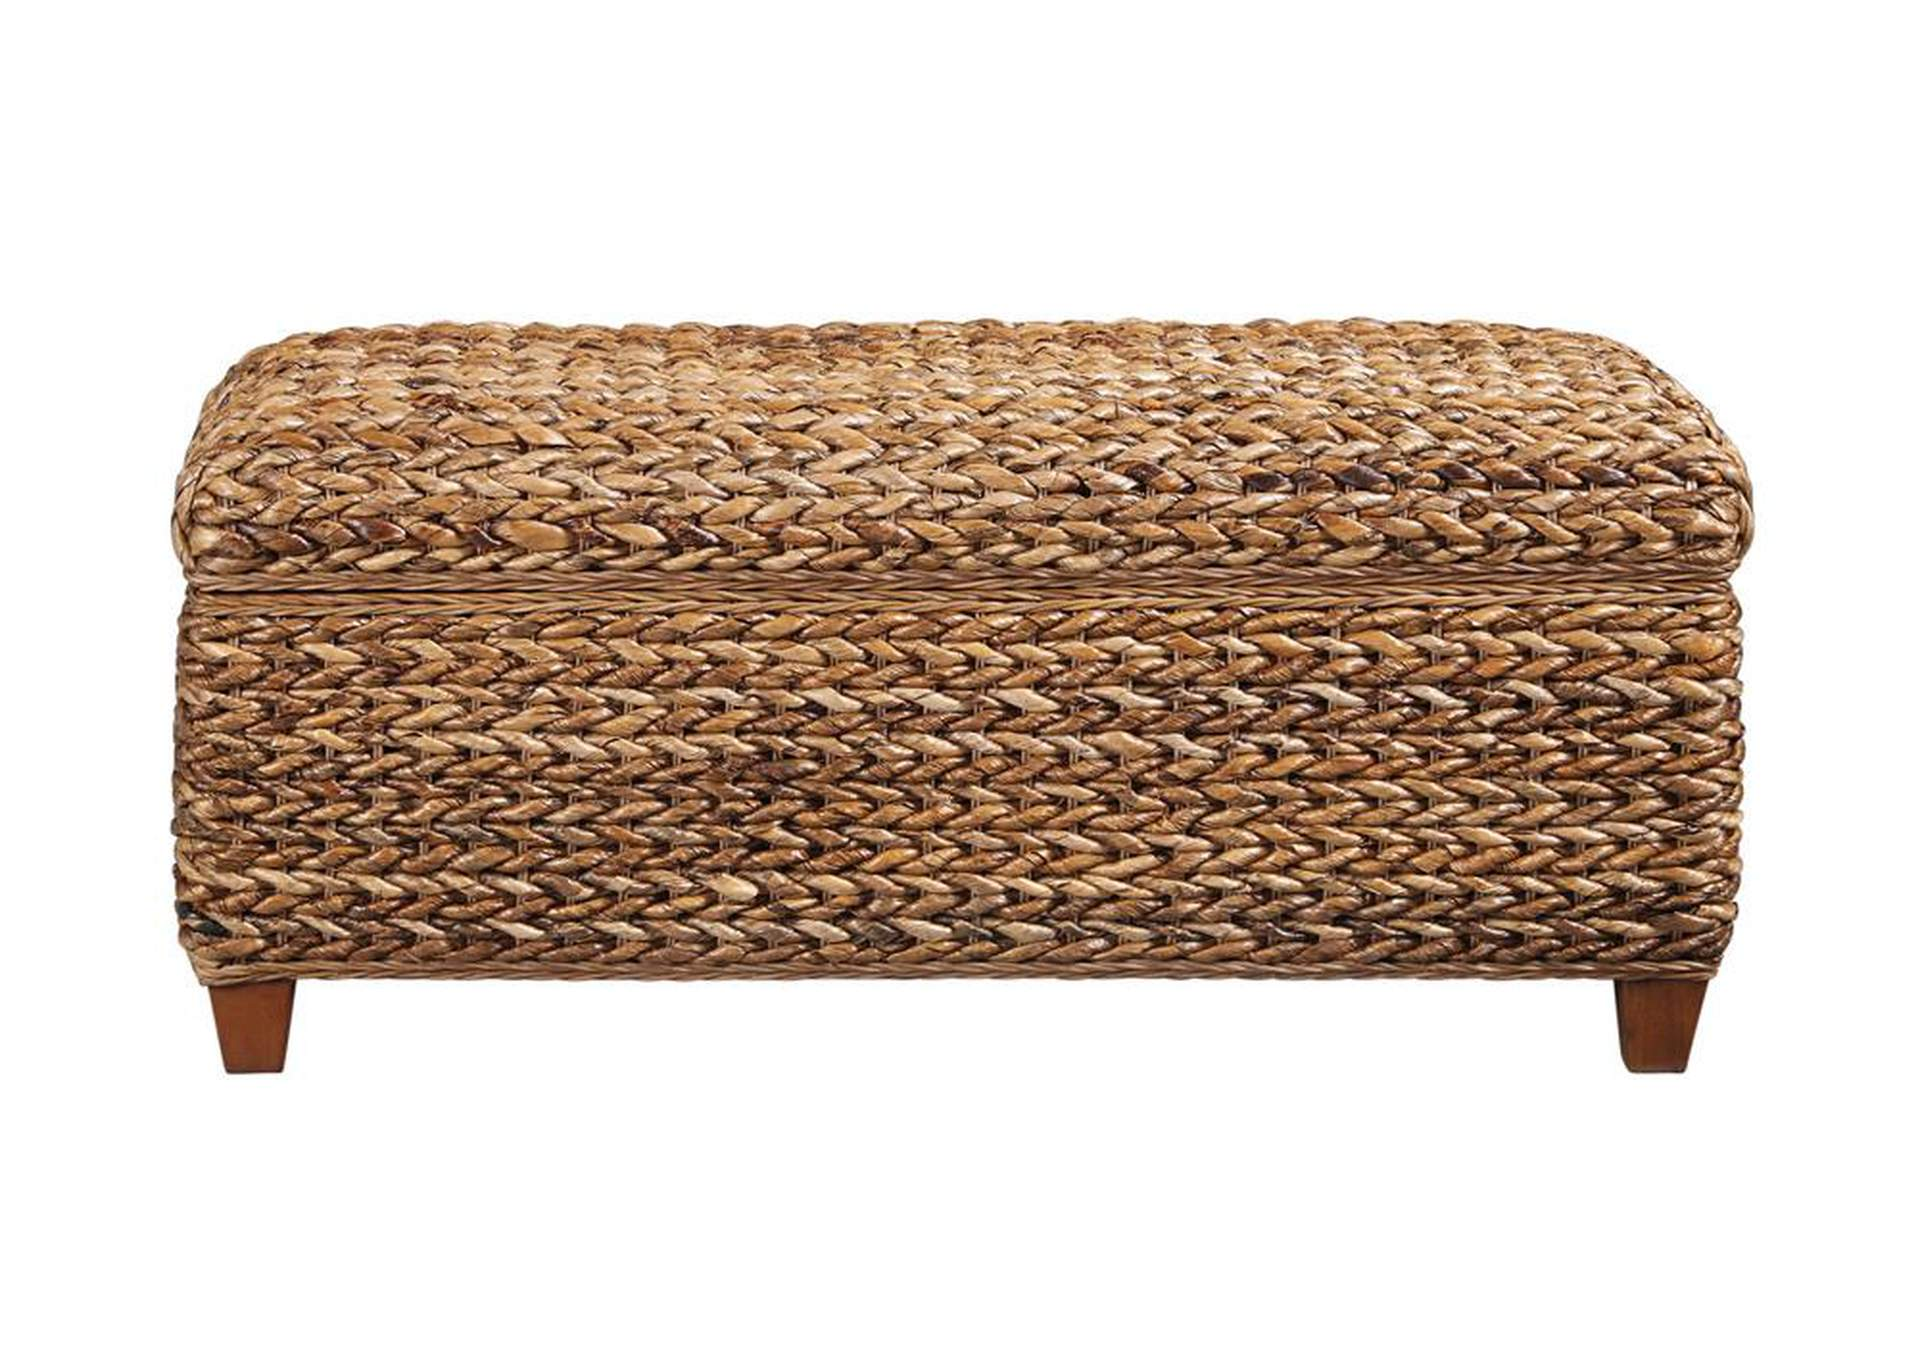 Laughton Natural Woven Banana Leaf Trunk,Coaster Furniture